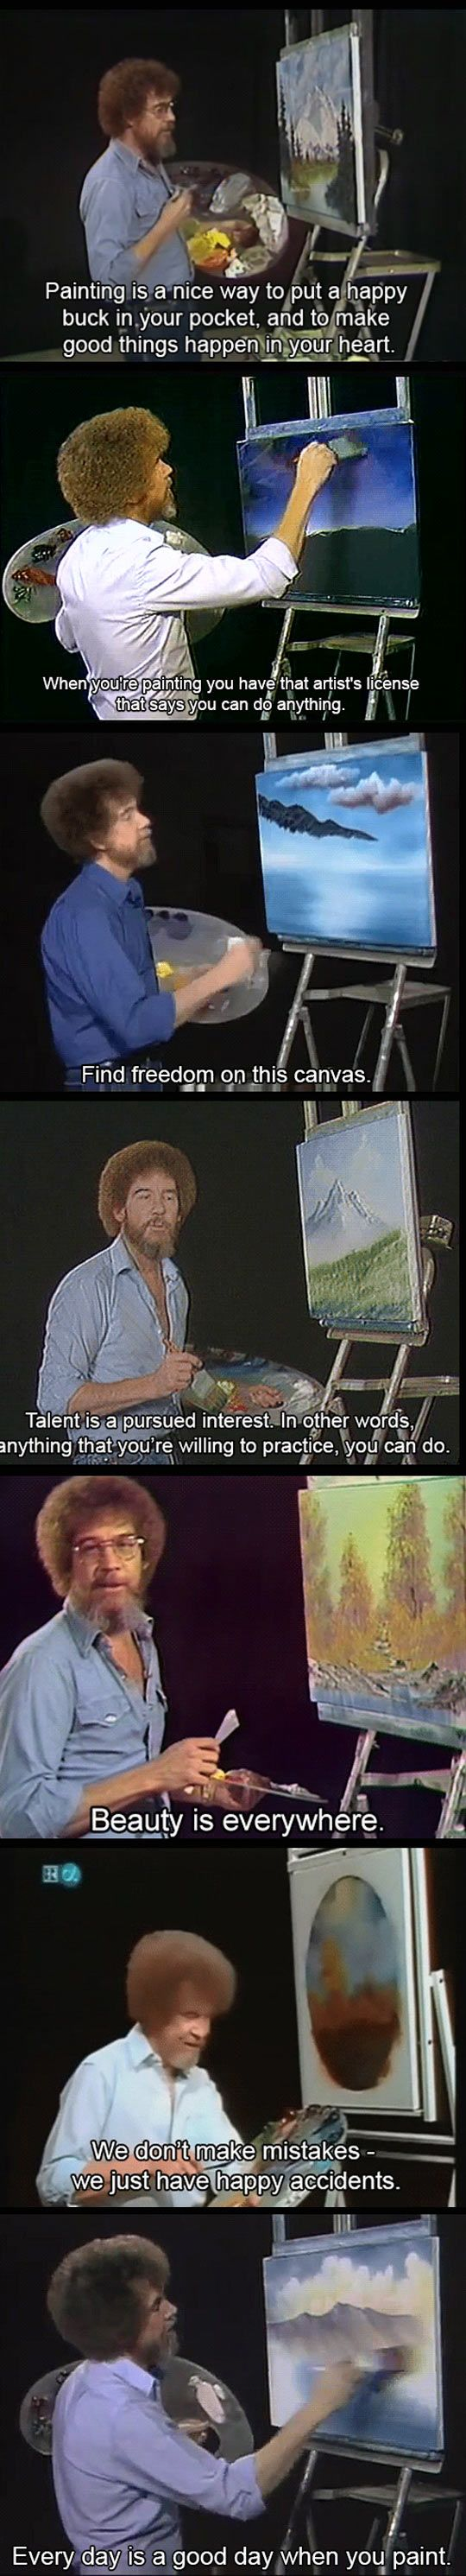 The great Bob Ross, ladies and gentlemen // funny pictures - funny photos - funny images - funny pics - funny quotes - #lol #humor #funnypictures